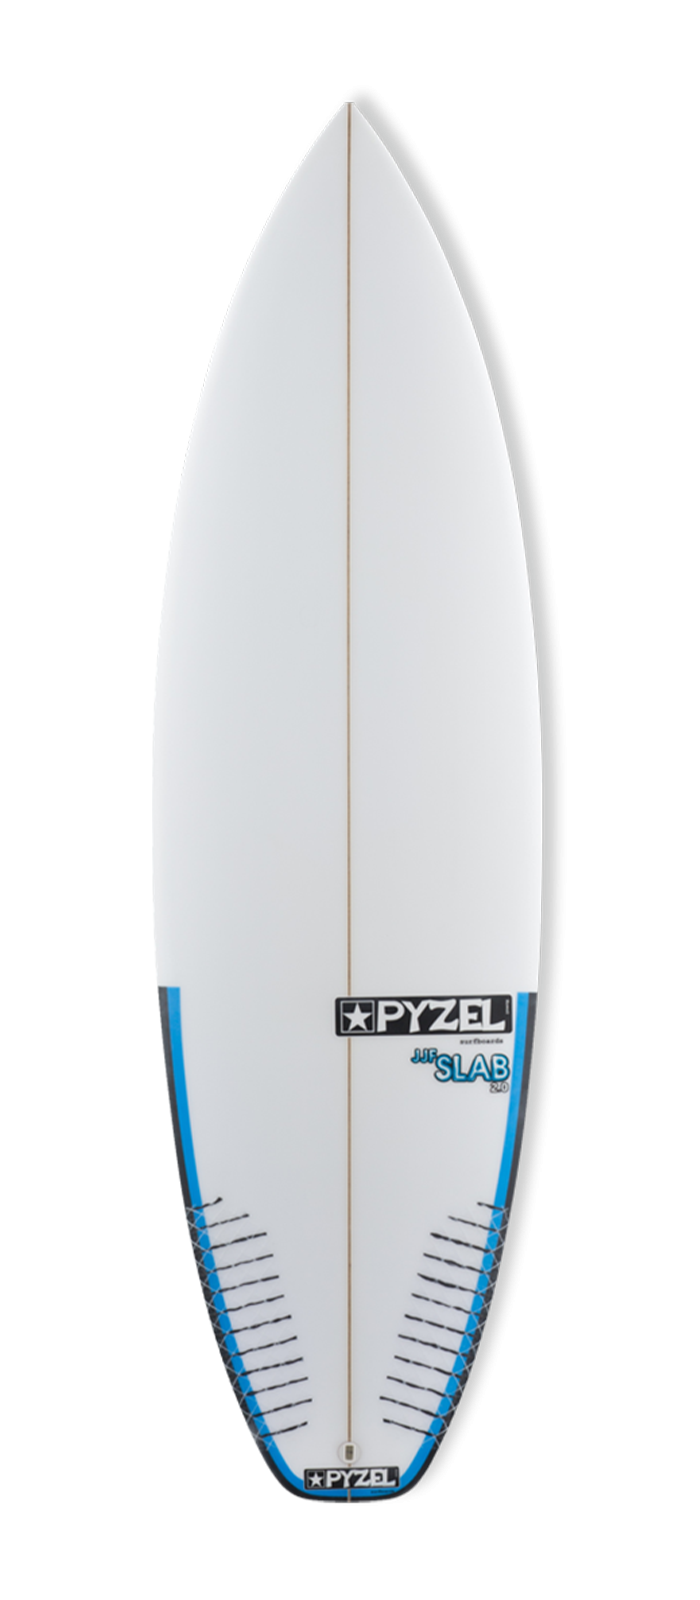 JJF SLAB 2.0 surfboard model